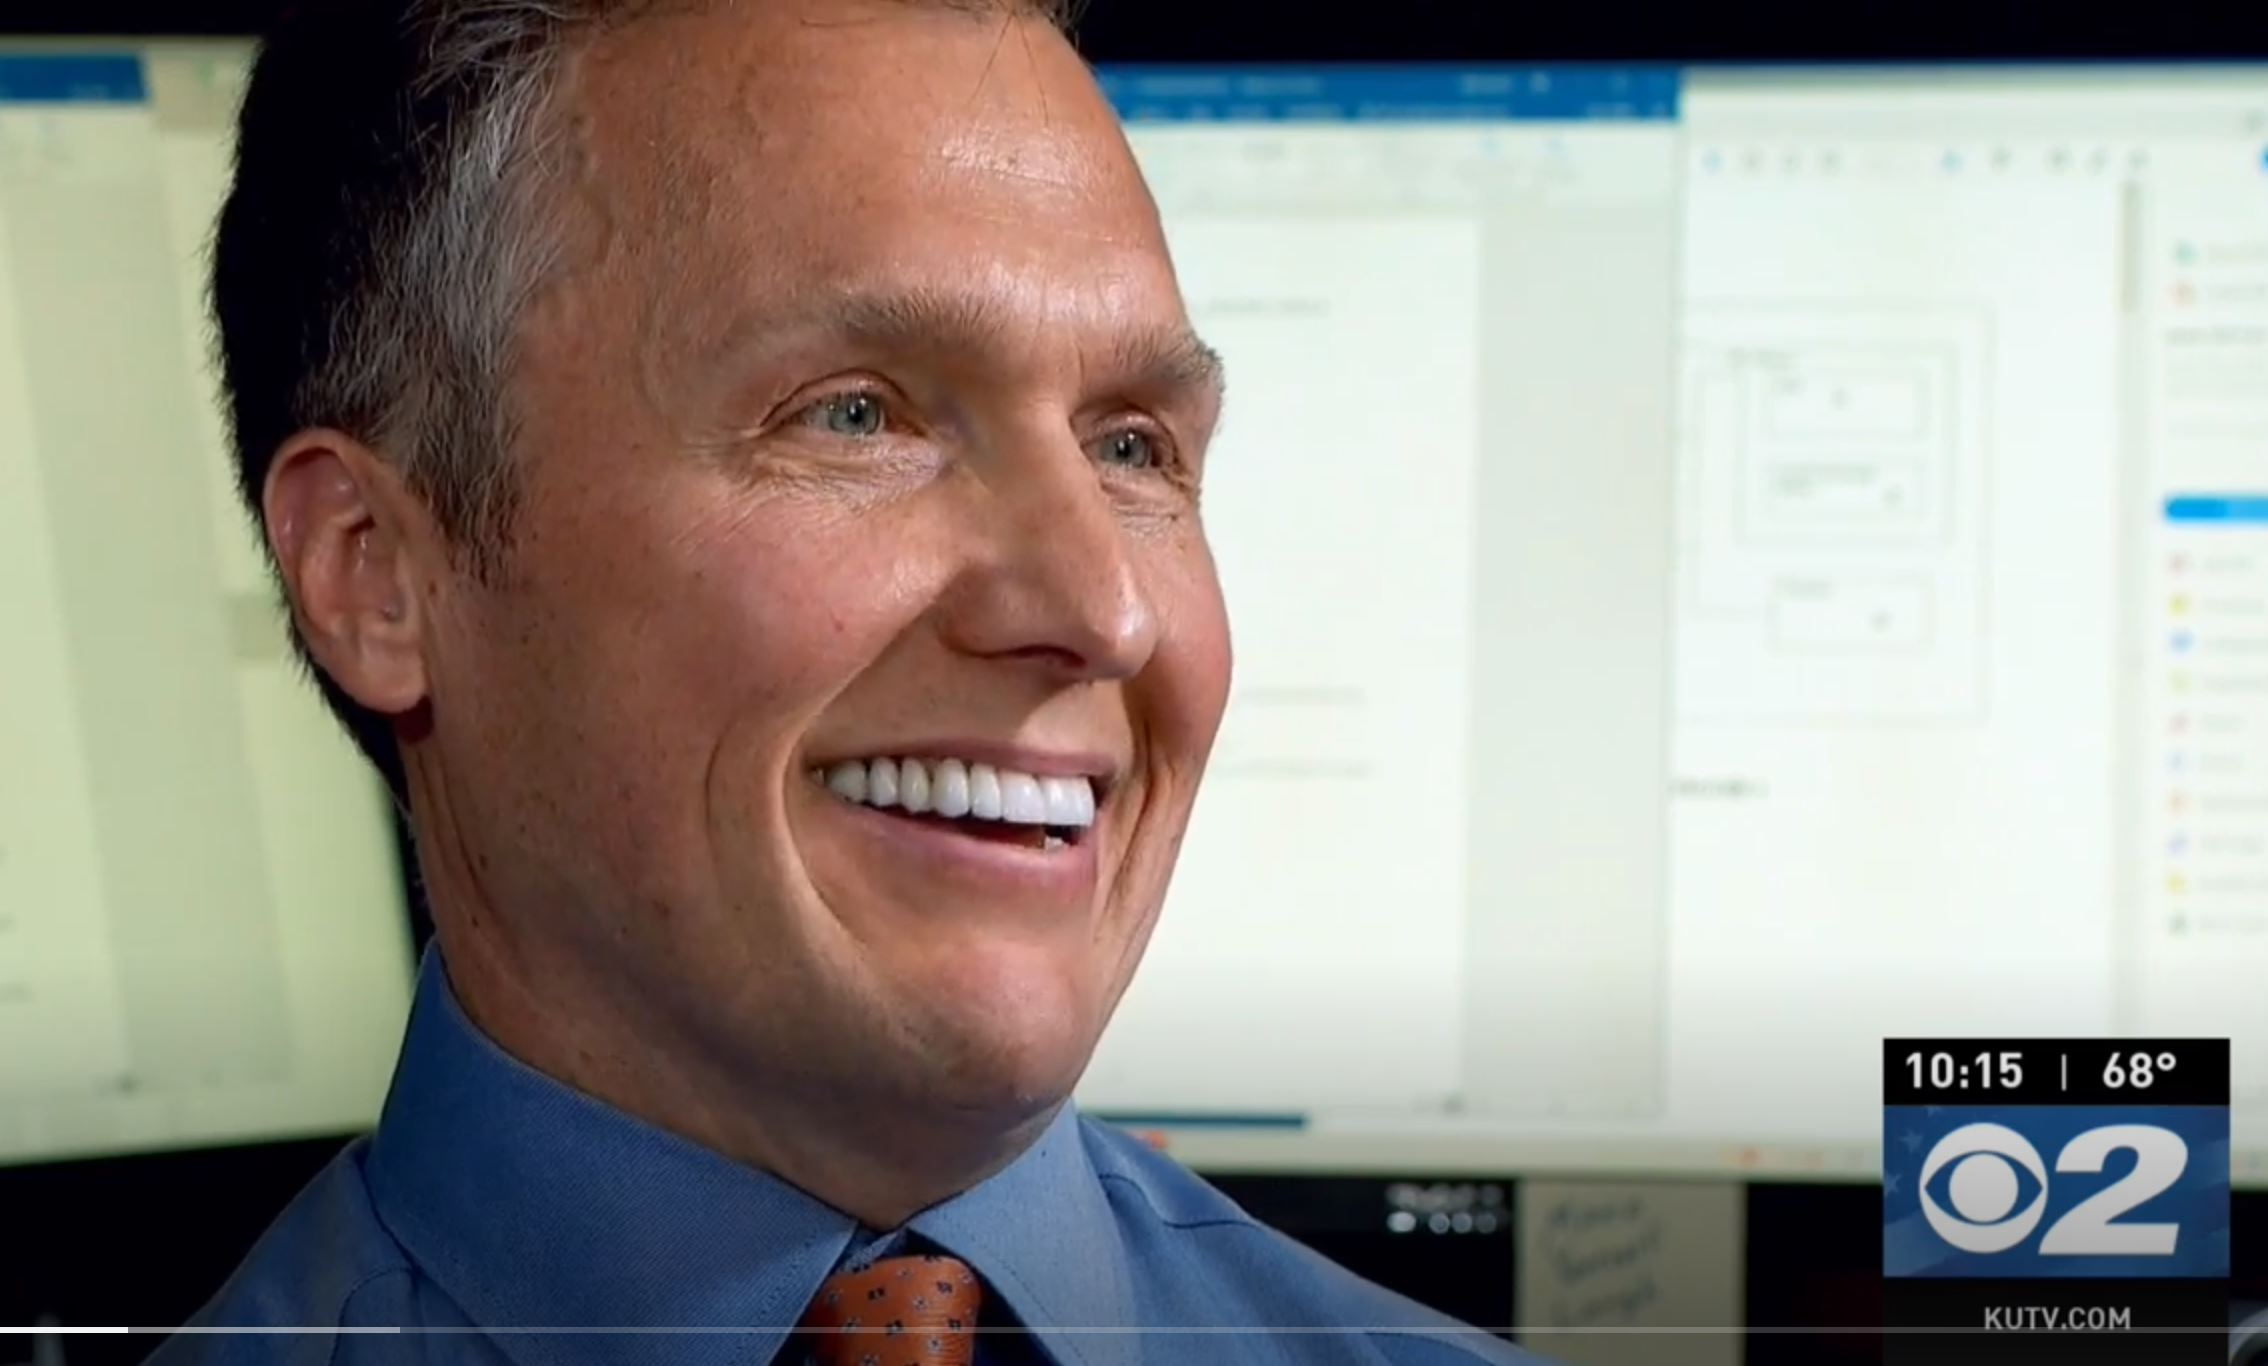 From Law to Laughs: Utah Patent Lawyer Chases Dream of Becoming a Comedian